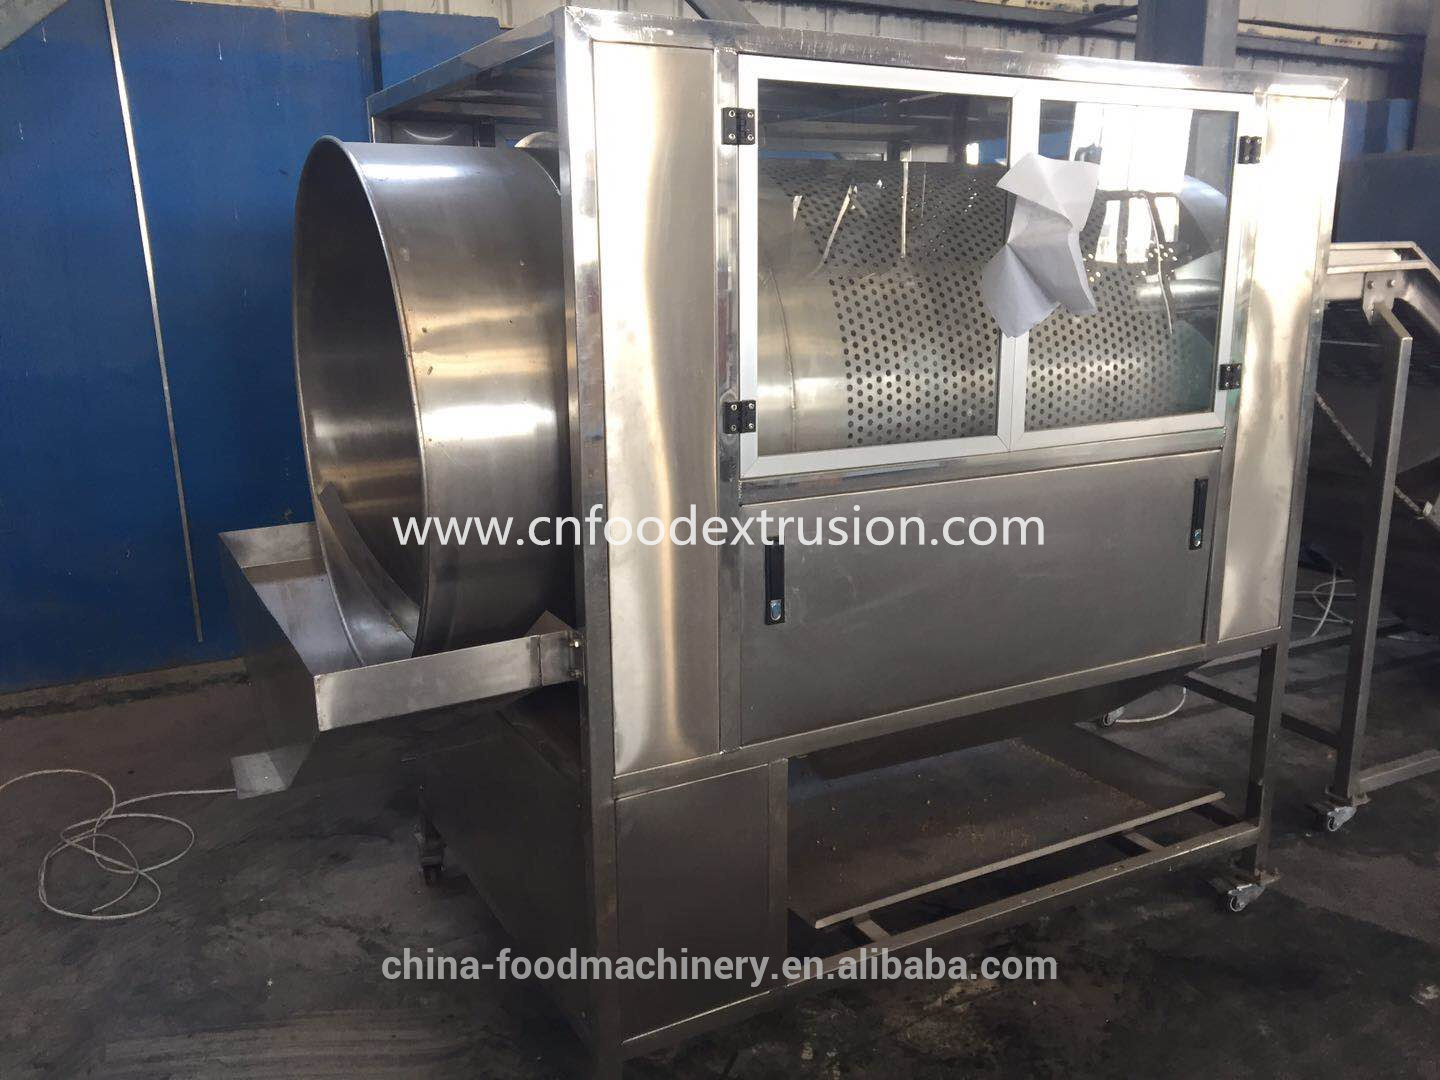 Hot Selling full automatic China popcorn machine with price